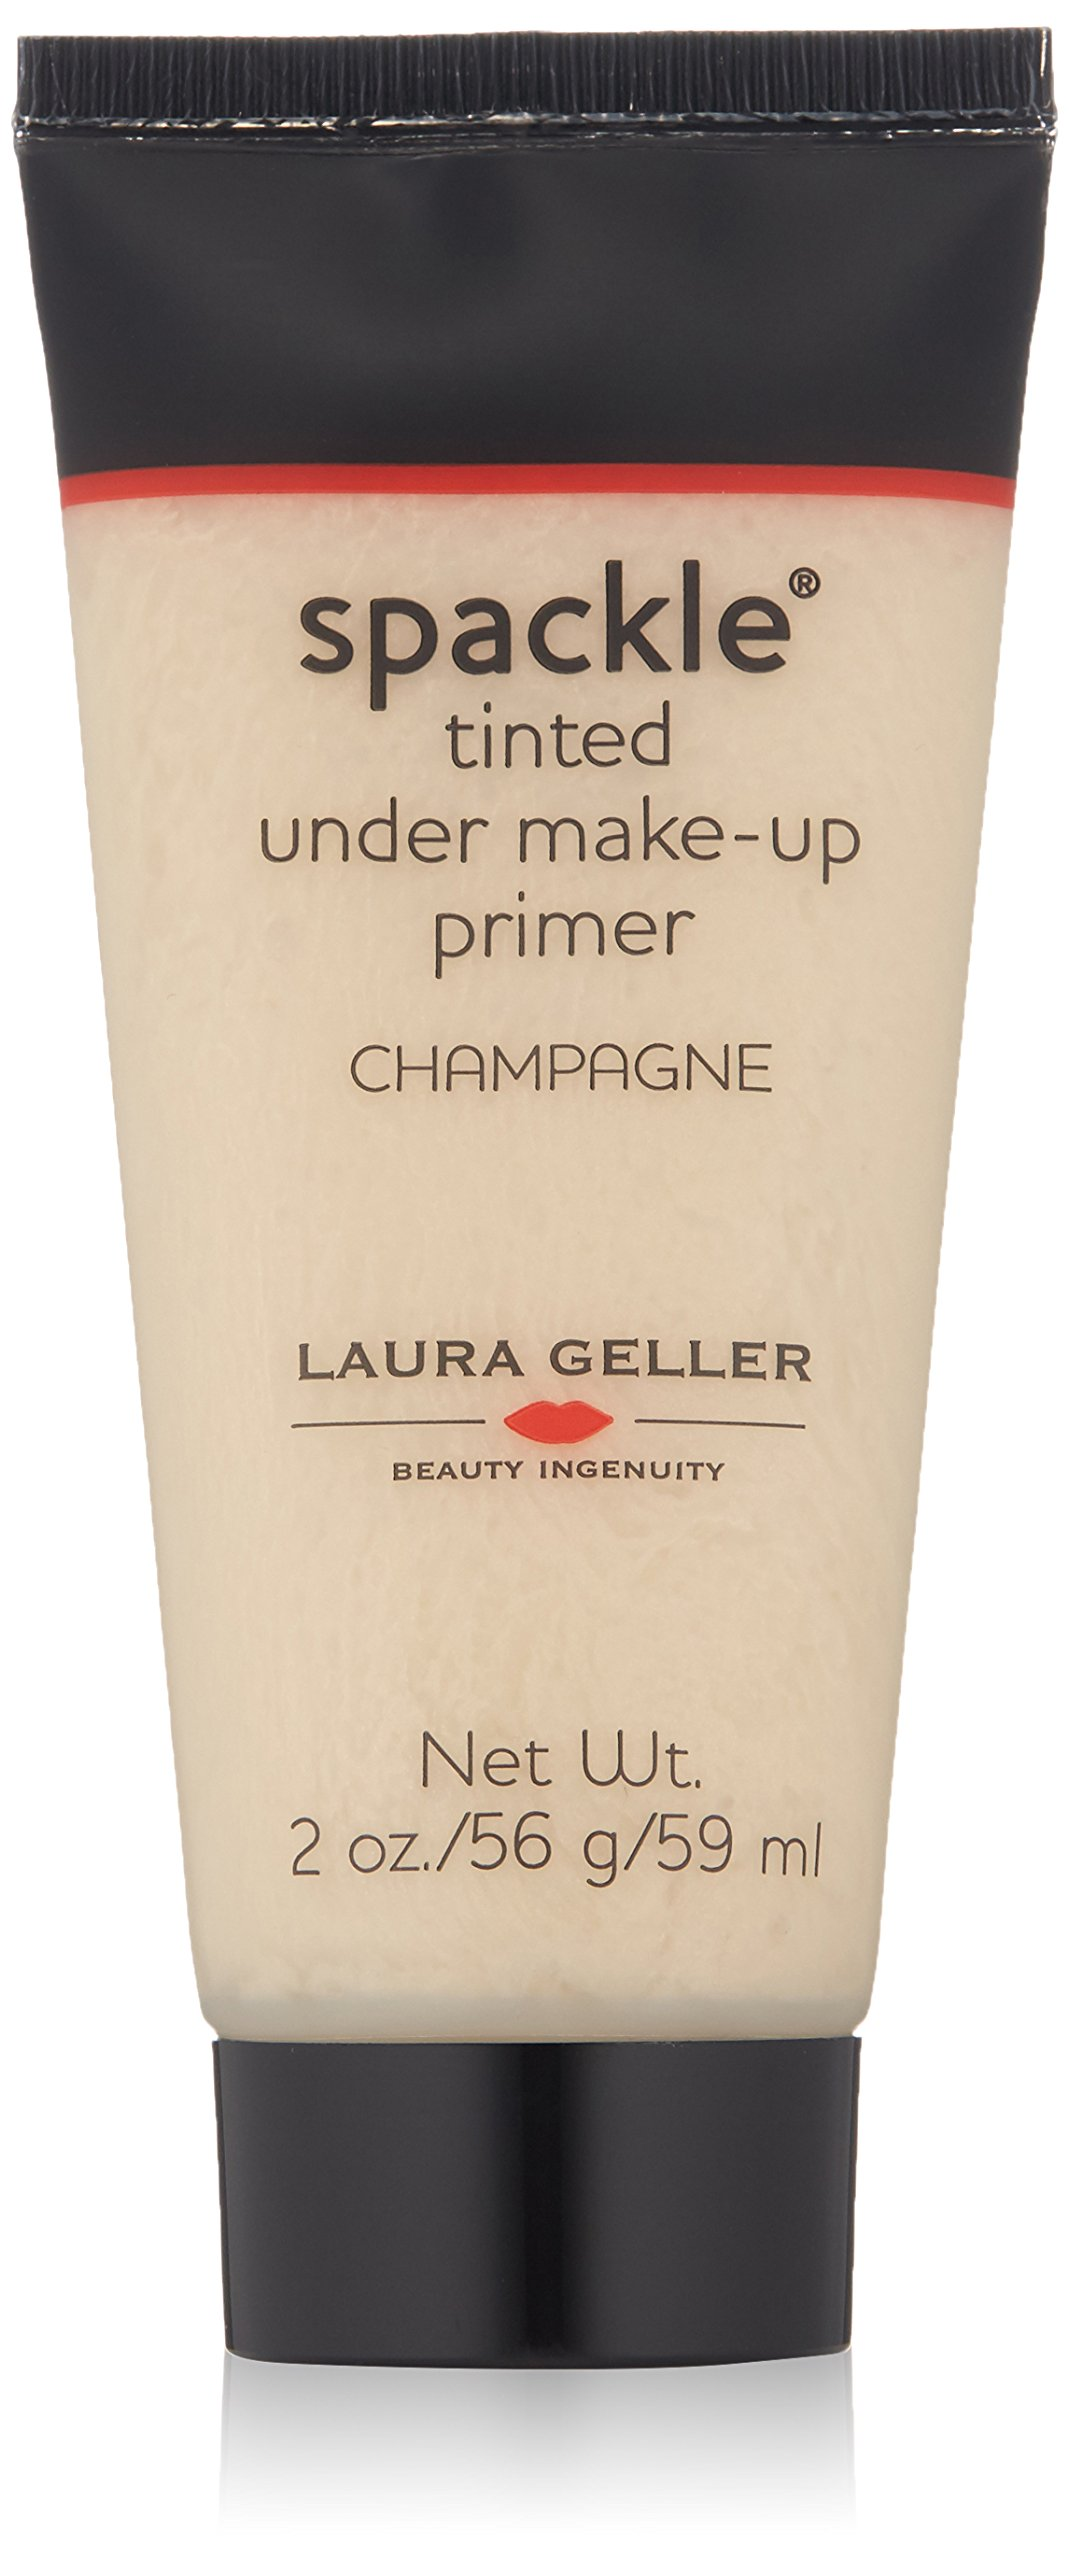 Laura Geller New York Tinted Under Makeup Primer Champagne,2 oz